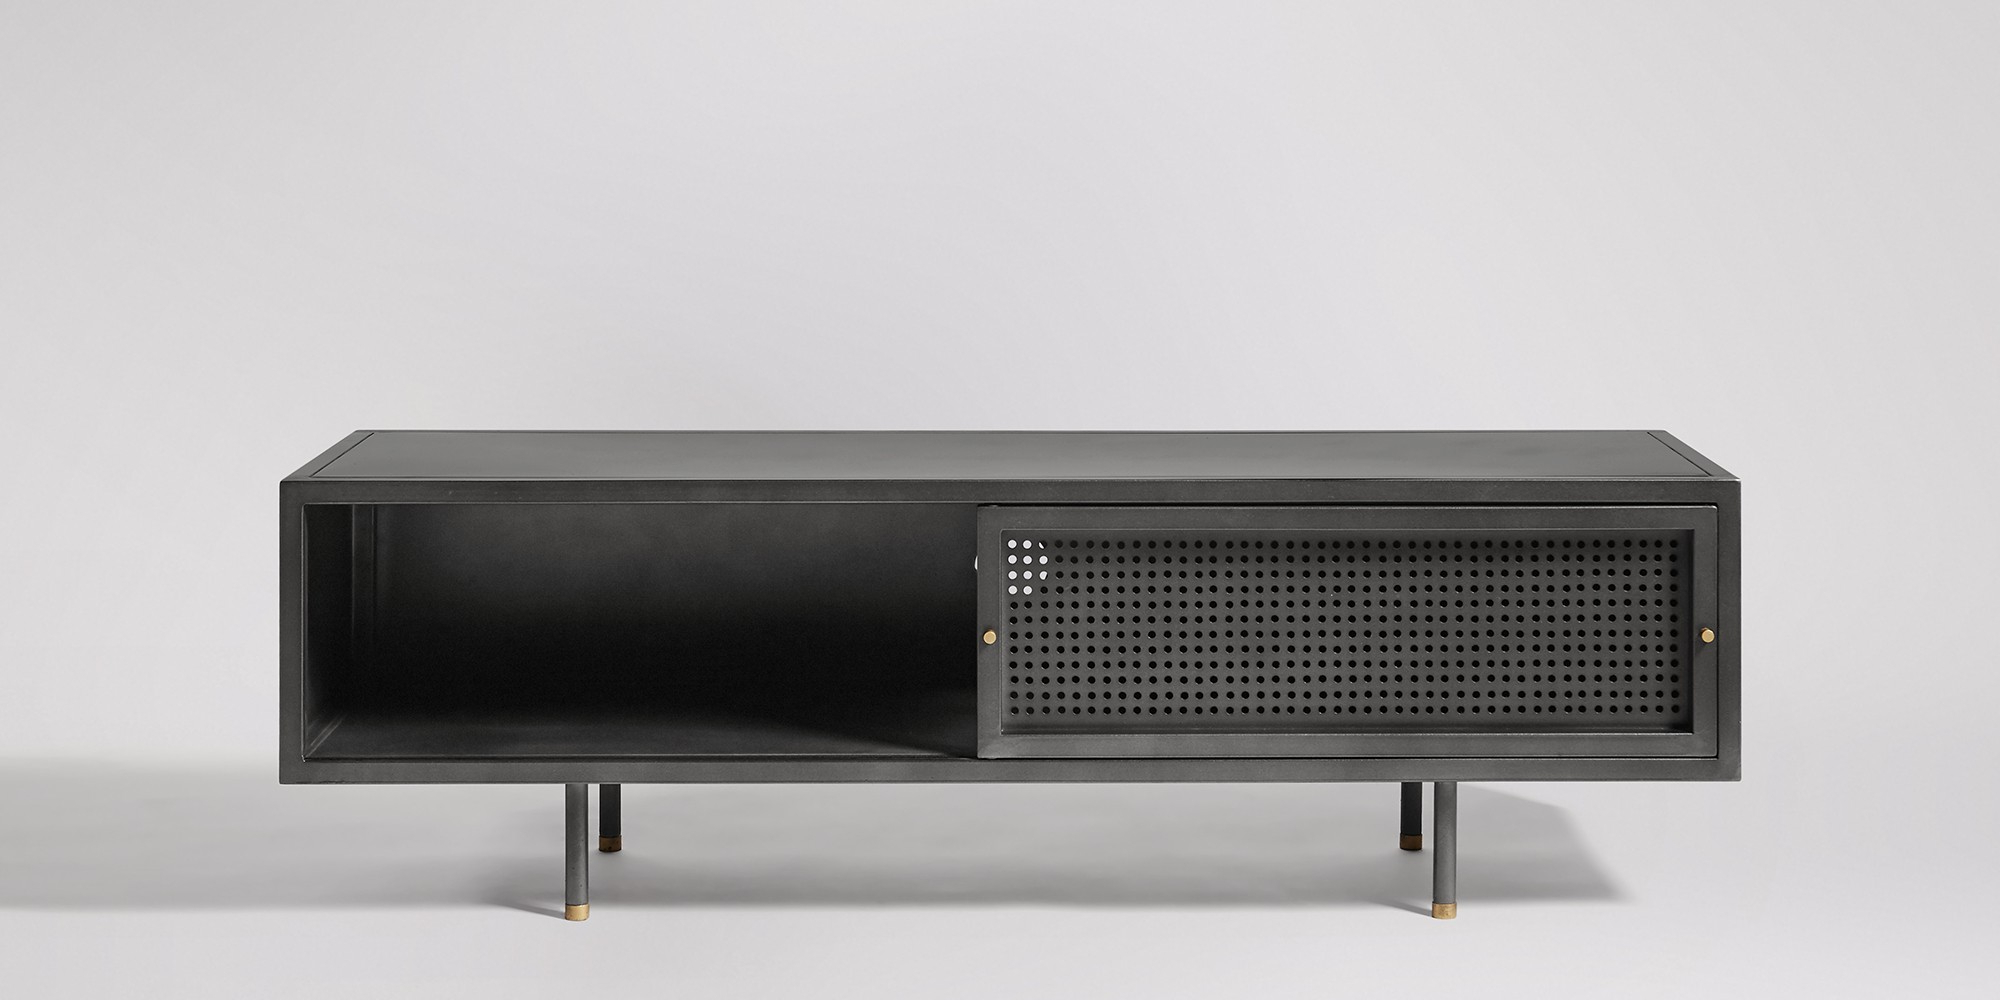 Sheffield Gunmetal & Brass Media Unit | Swoon Editions Inside Gunmetal Perforated Brass Media Console Tables (View 8 of 20)